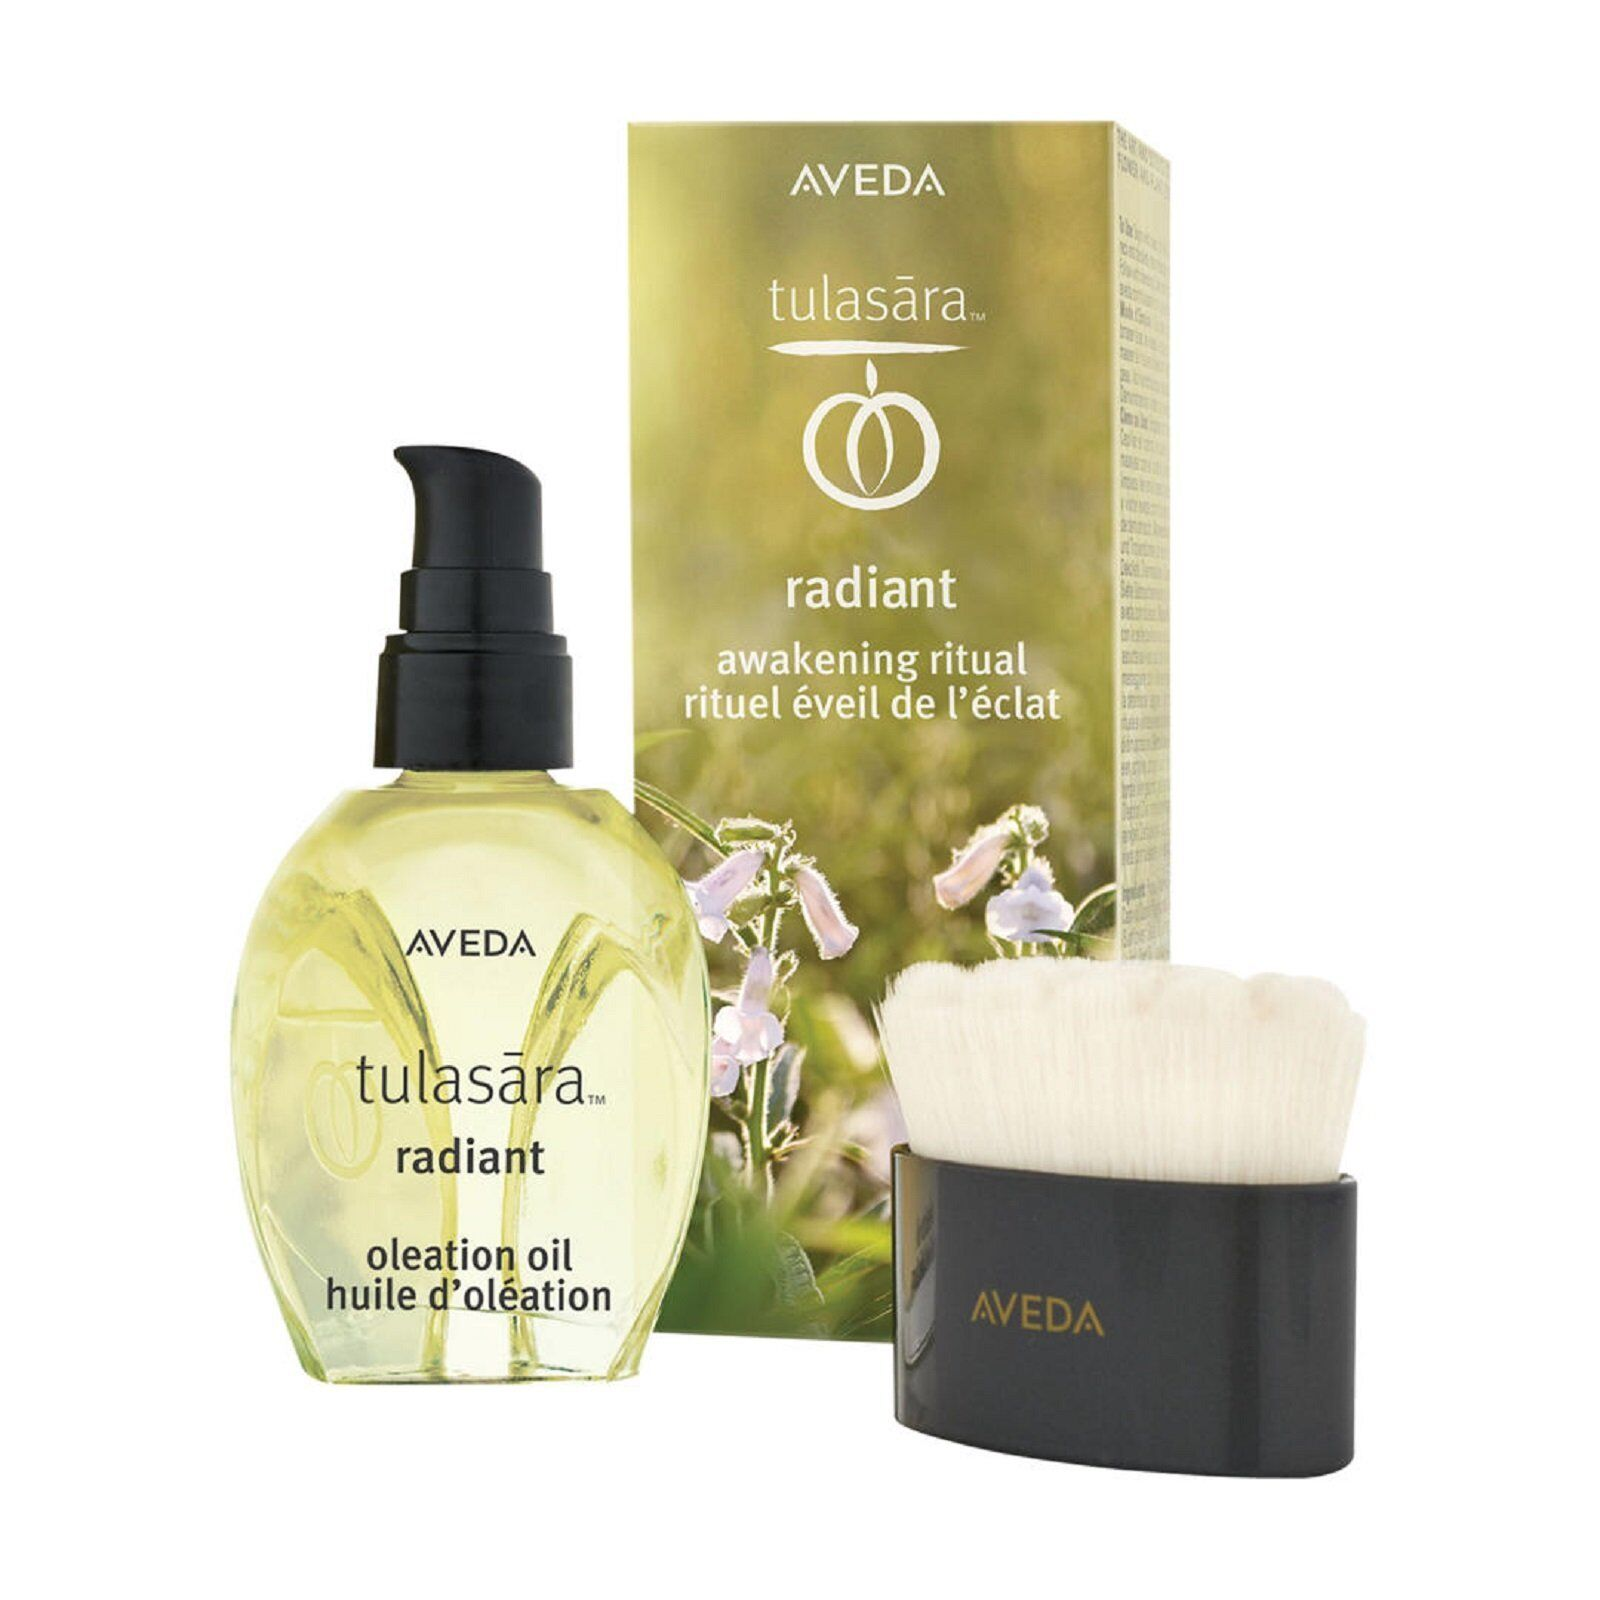 Aveda tulasara awakening ritual. Come discover Zen Cozy Self-Care Gifts for Millennials & Holiday Humor! #giftguide #millennials #cozygifts